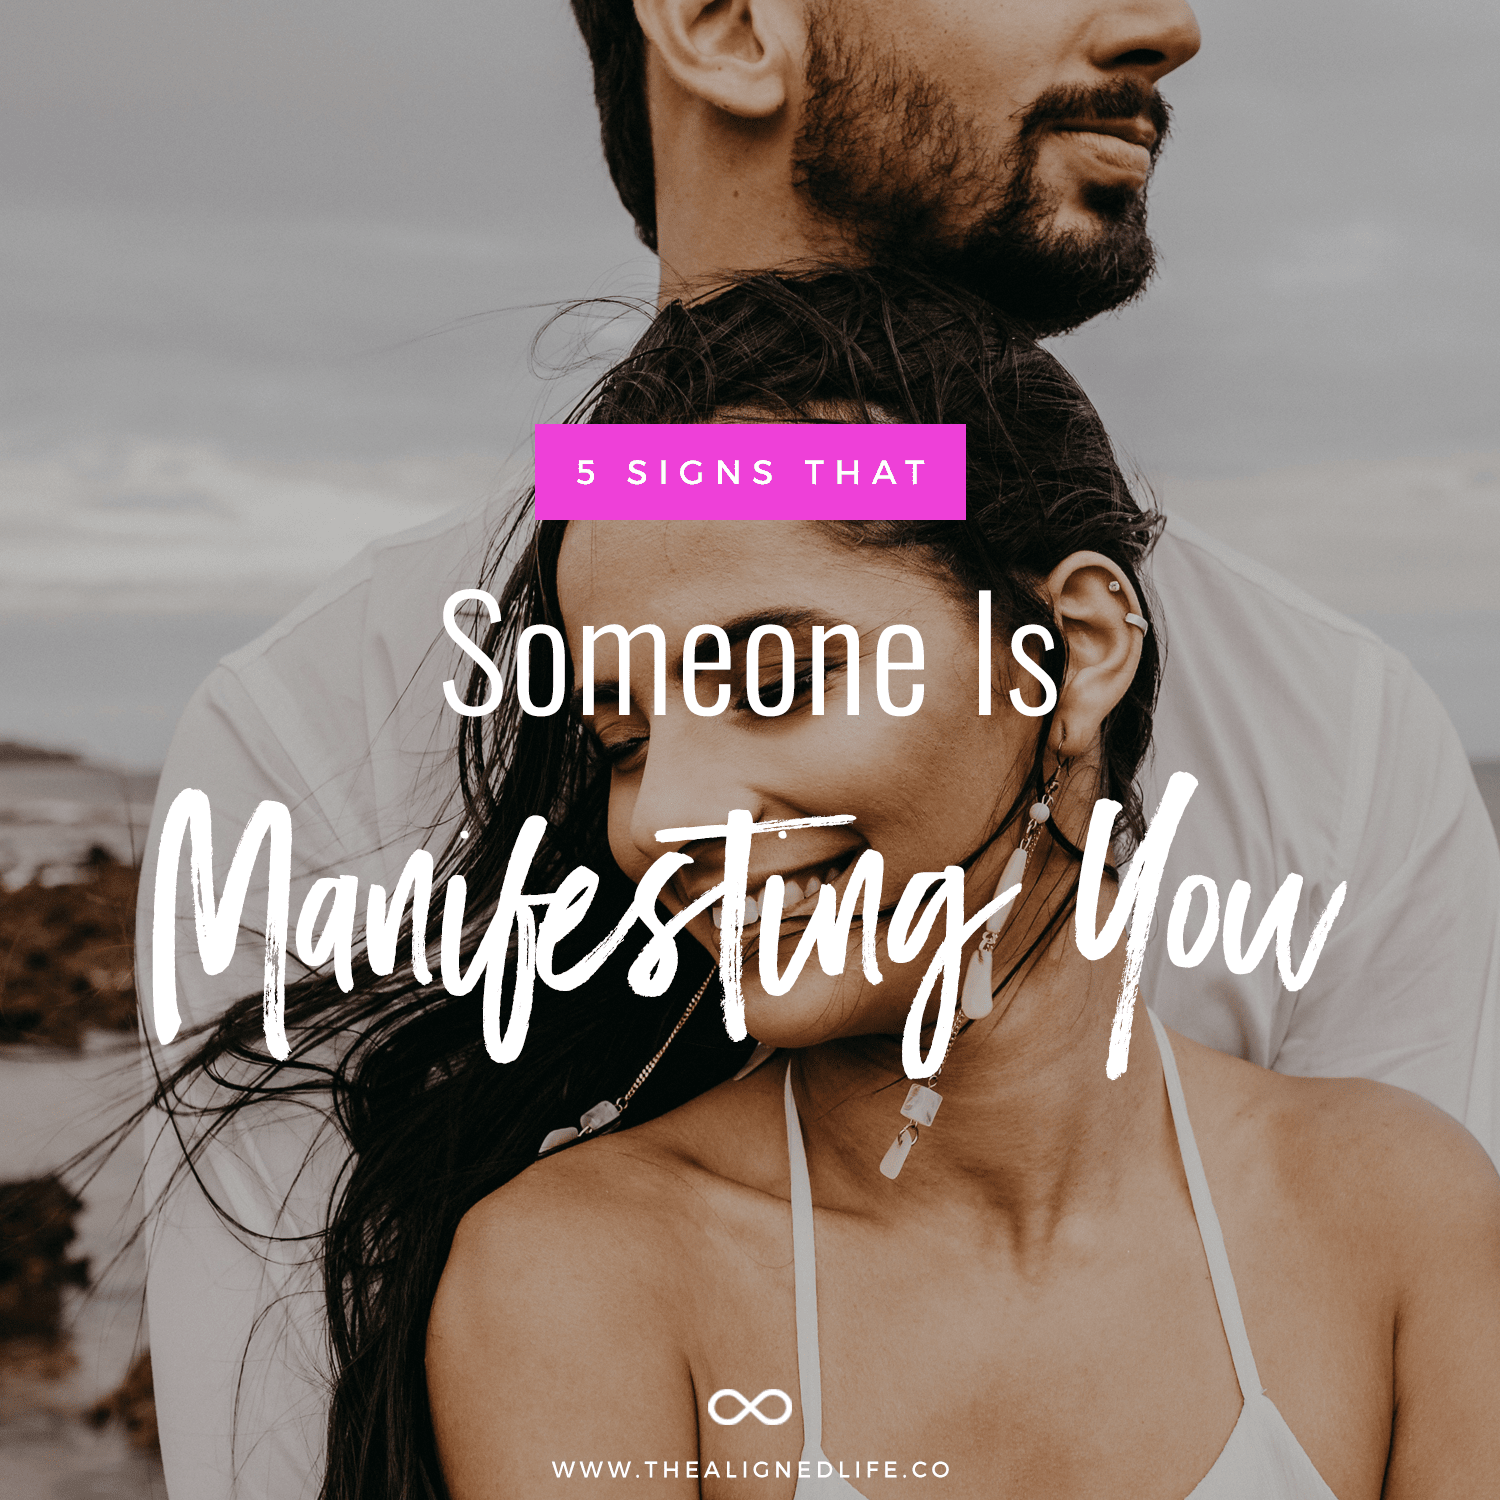 Is Someone Using The Law of Attraction On Me? 5 Signs That Someone is Manifesting You